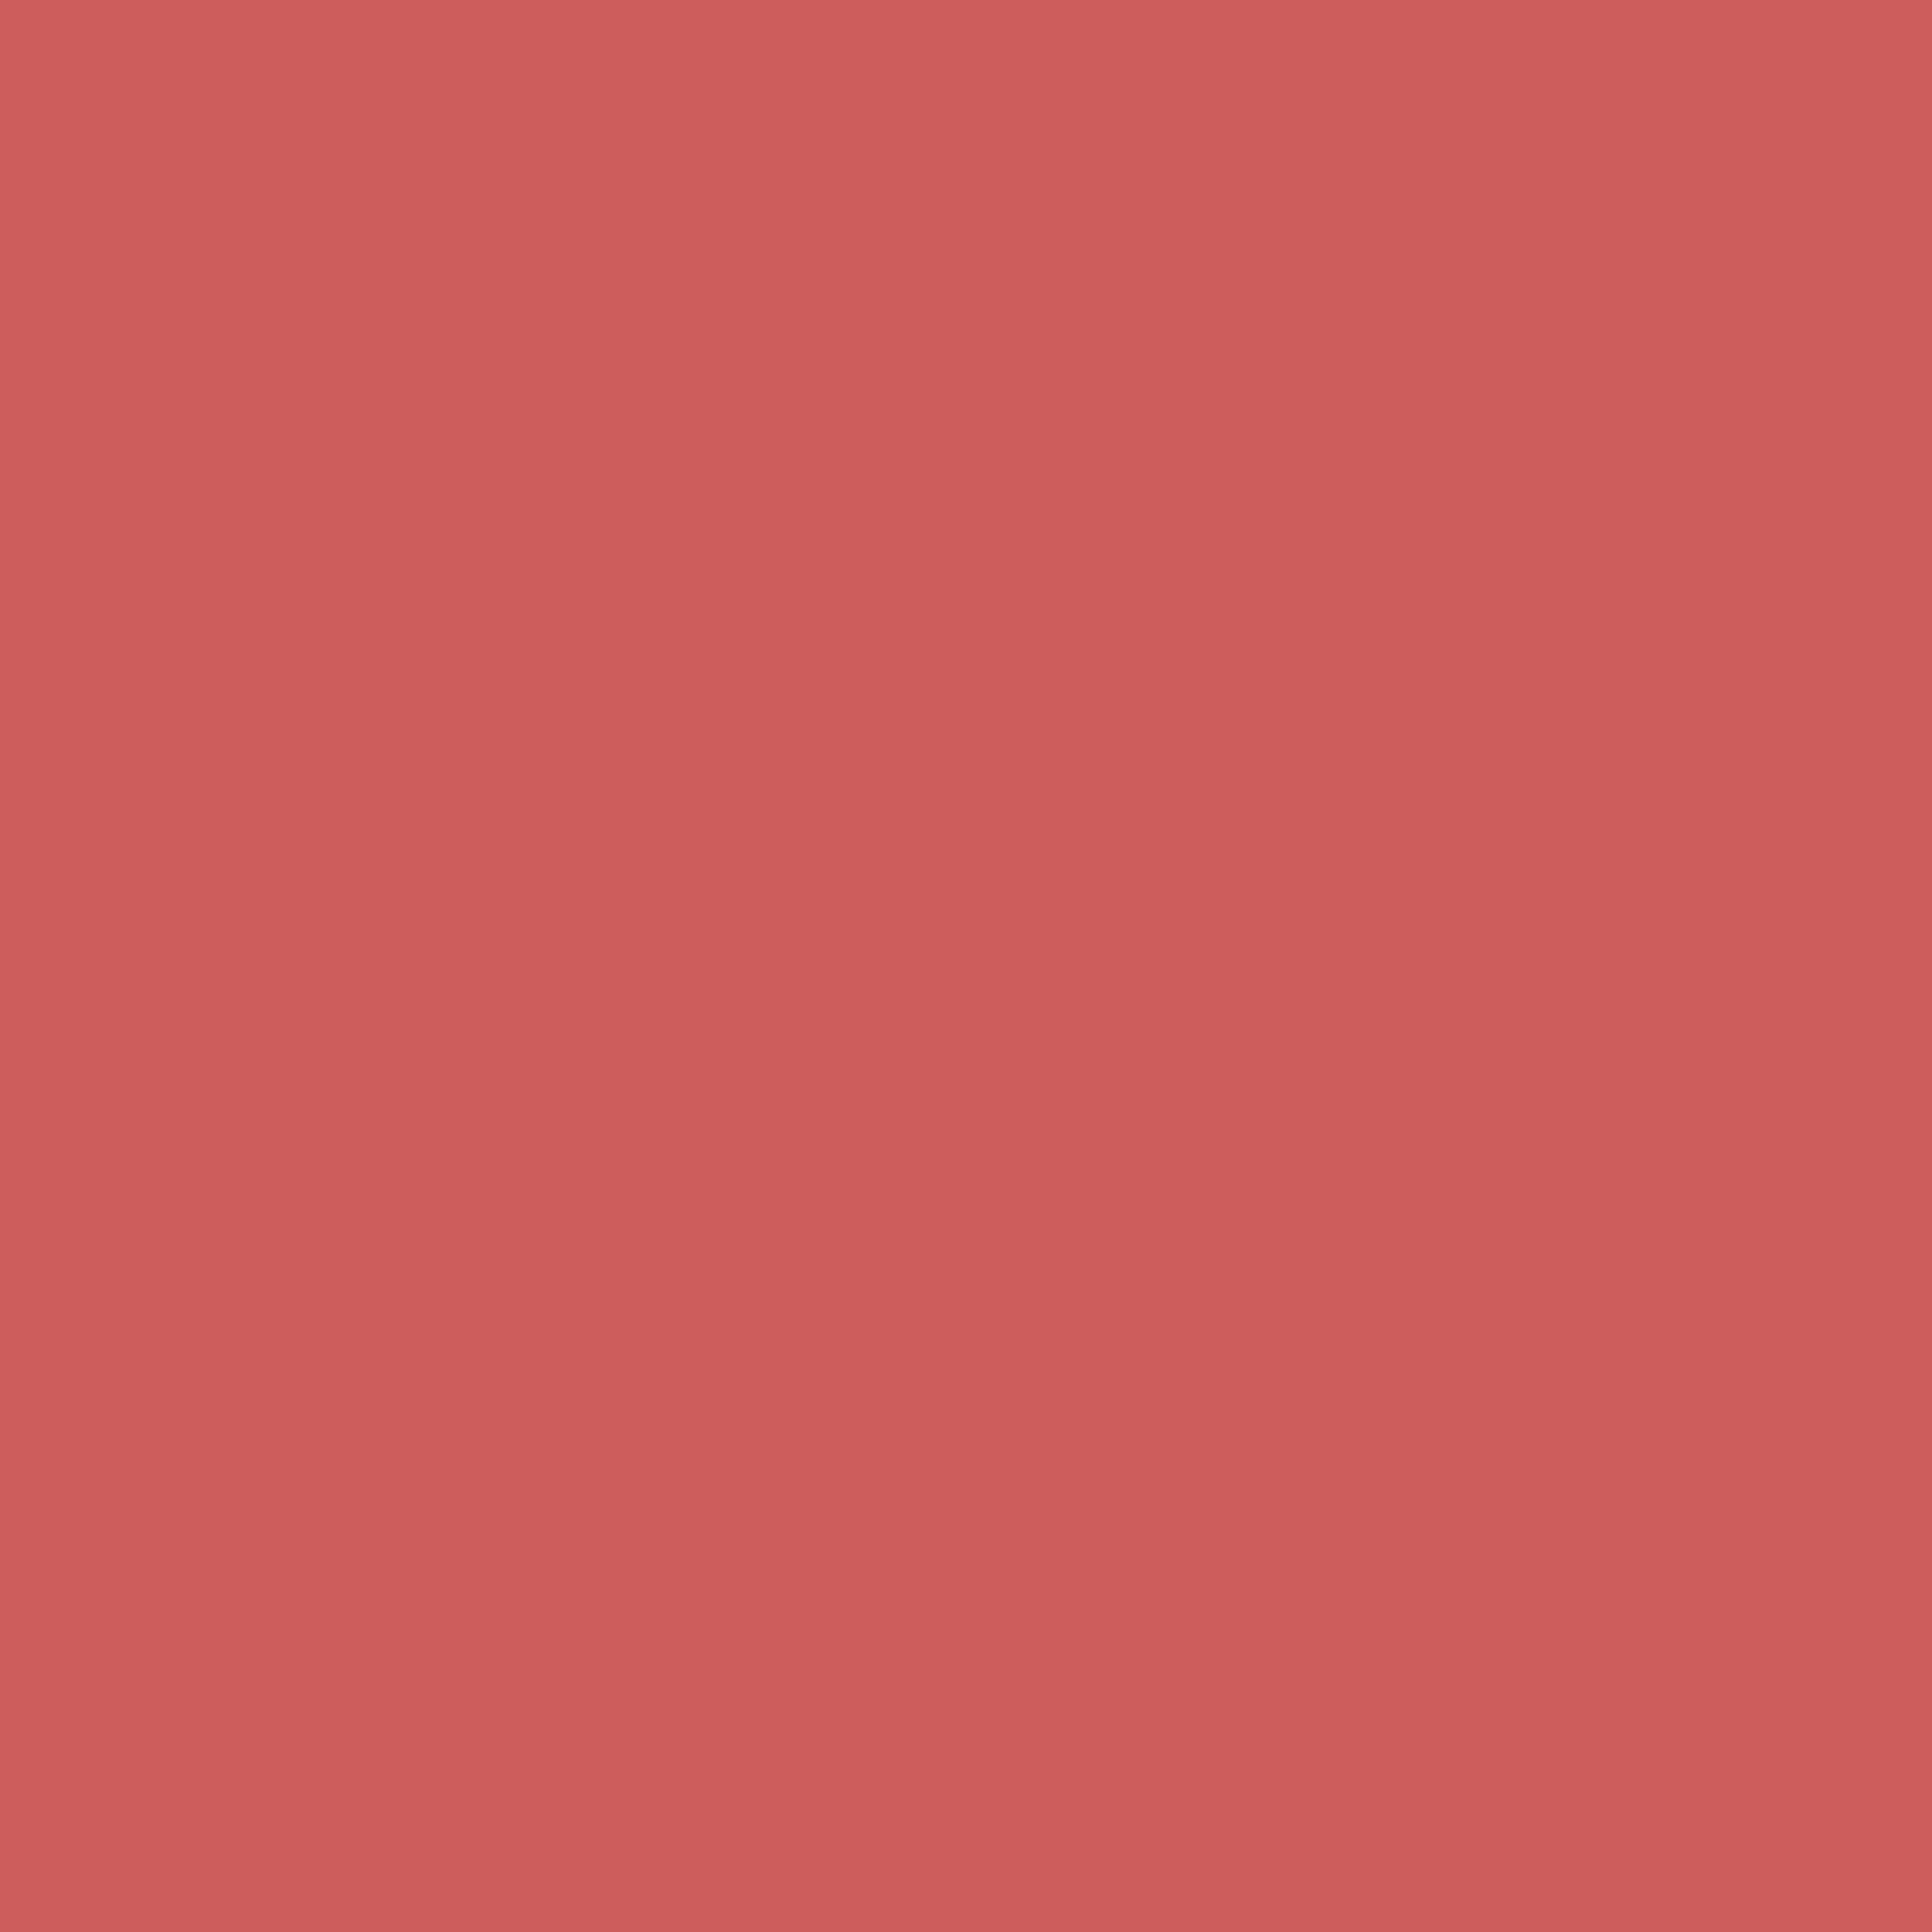 2732x2732 Indian Red Solid Color Background